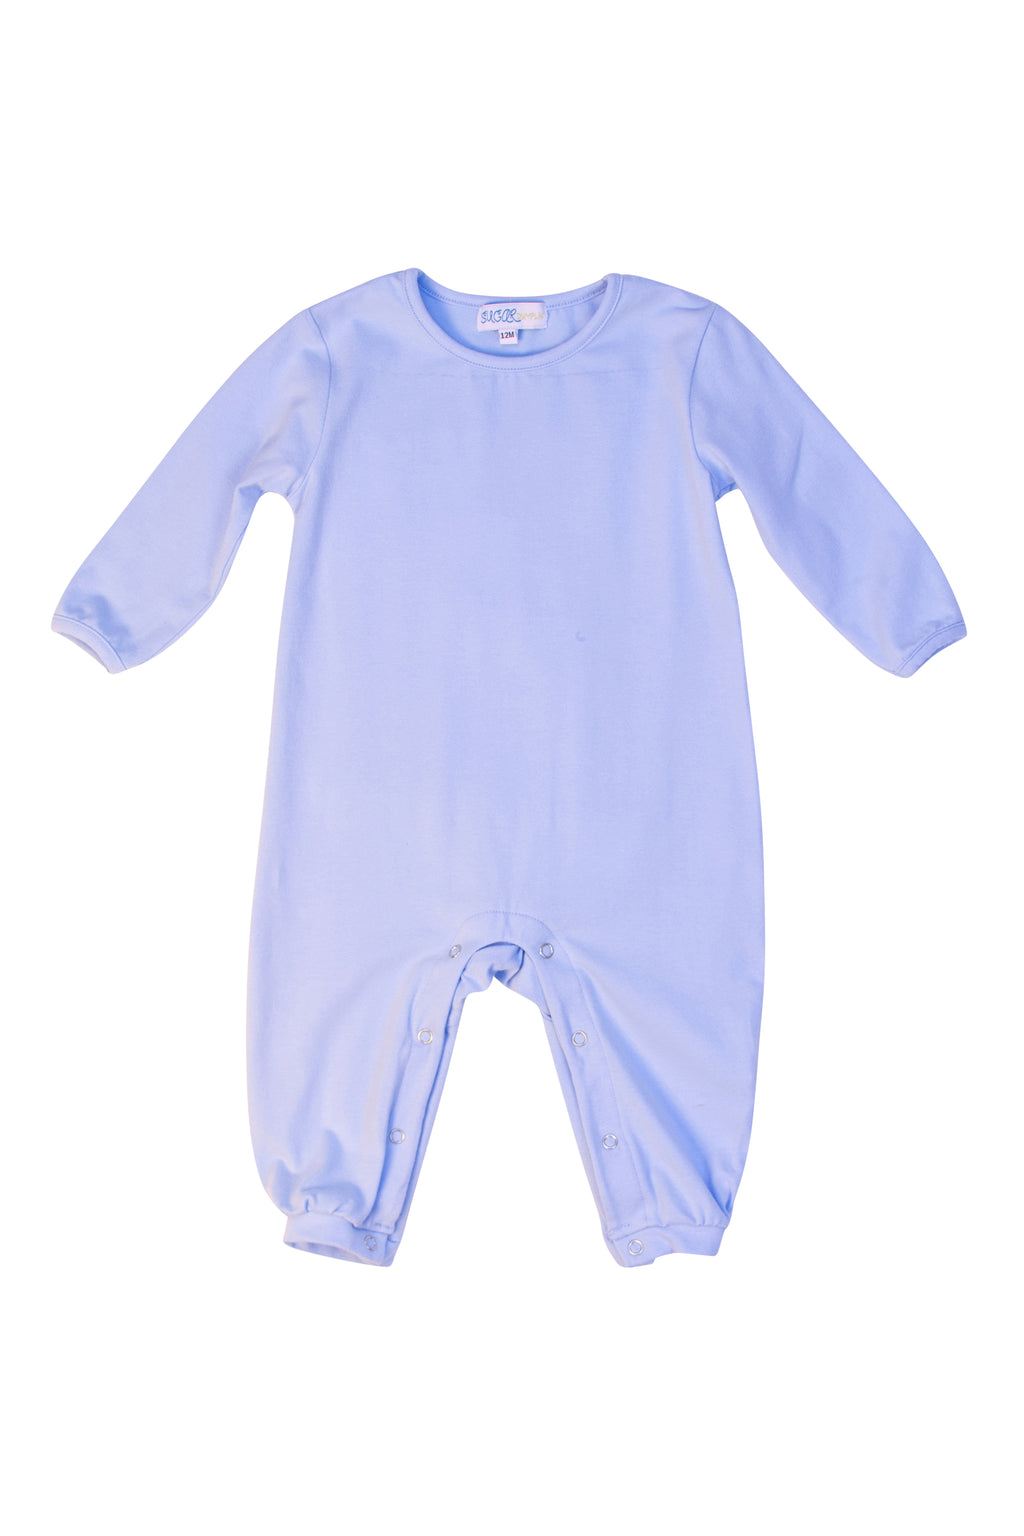 Boys Blue Knit Romper